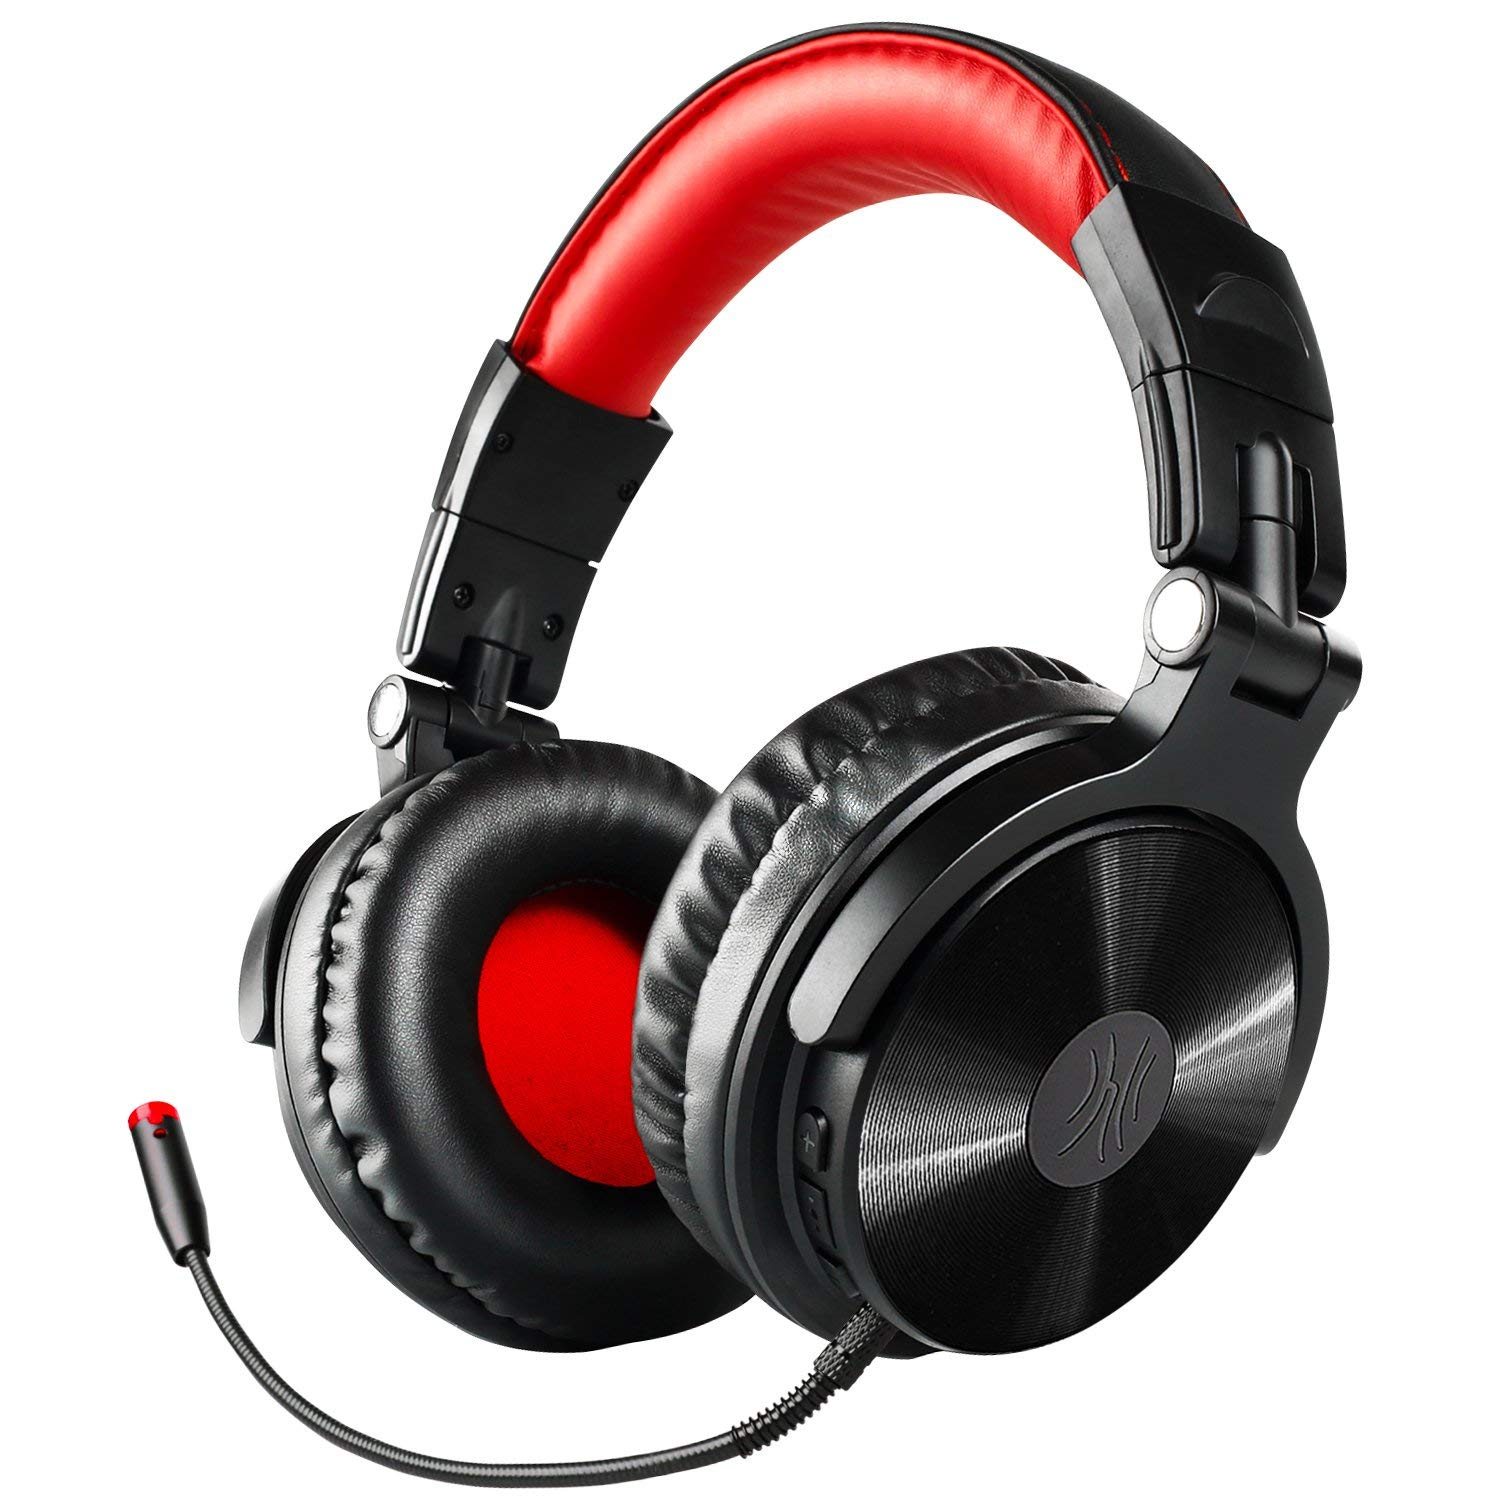 Bluetooth Over Ear Headphones with Microphone, 30 Hours Playtime Wireless Foldable Hi-Fi Headset, Noise Isolating Headphones with Wired Mode for Mobile Phones/PC/TV (black-red)